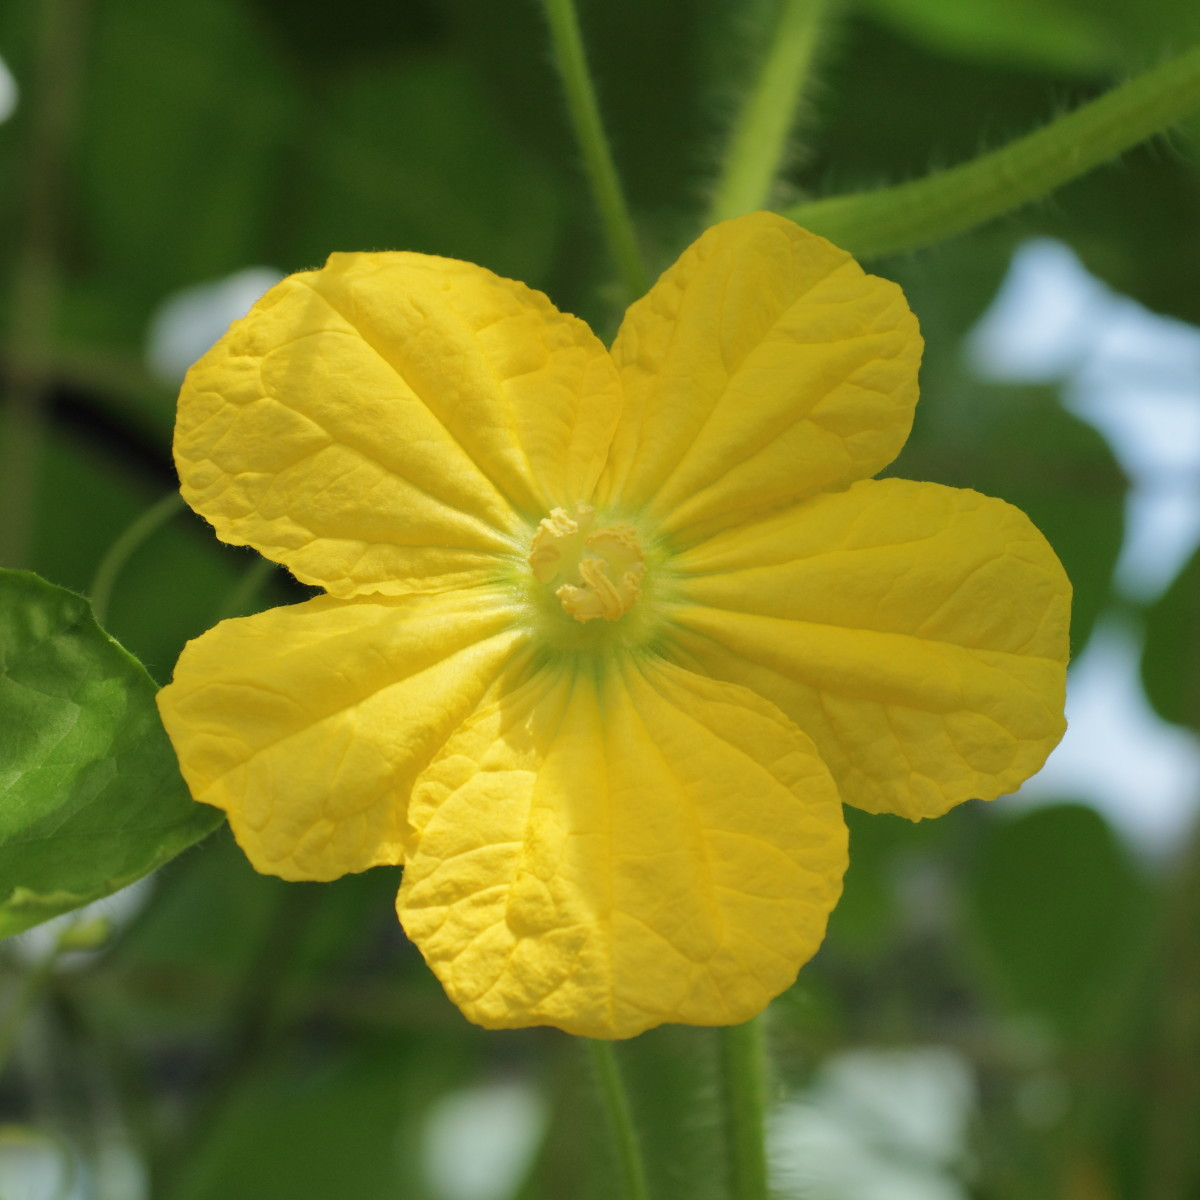 yellow bottle gourd flower